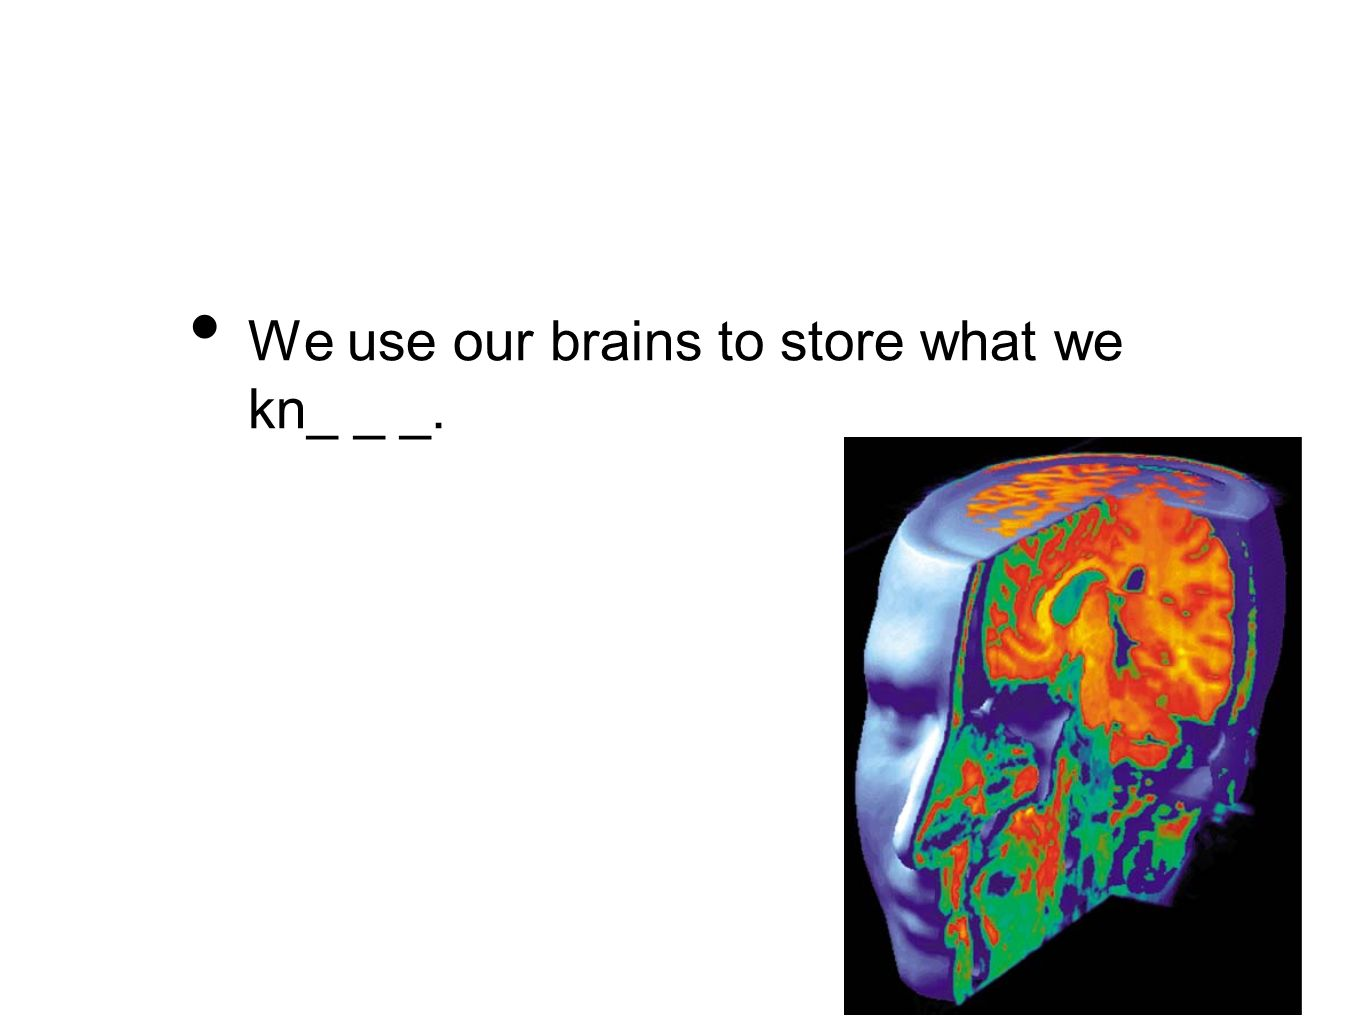 We use our brains to store what we kn_ _ _.